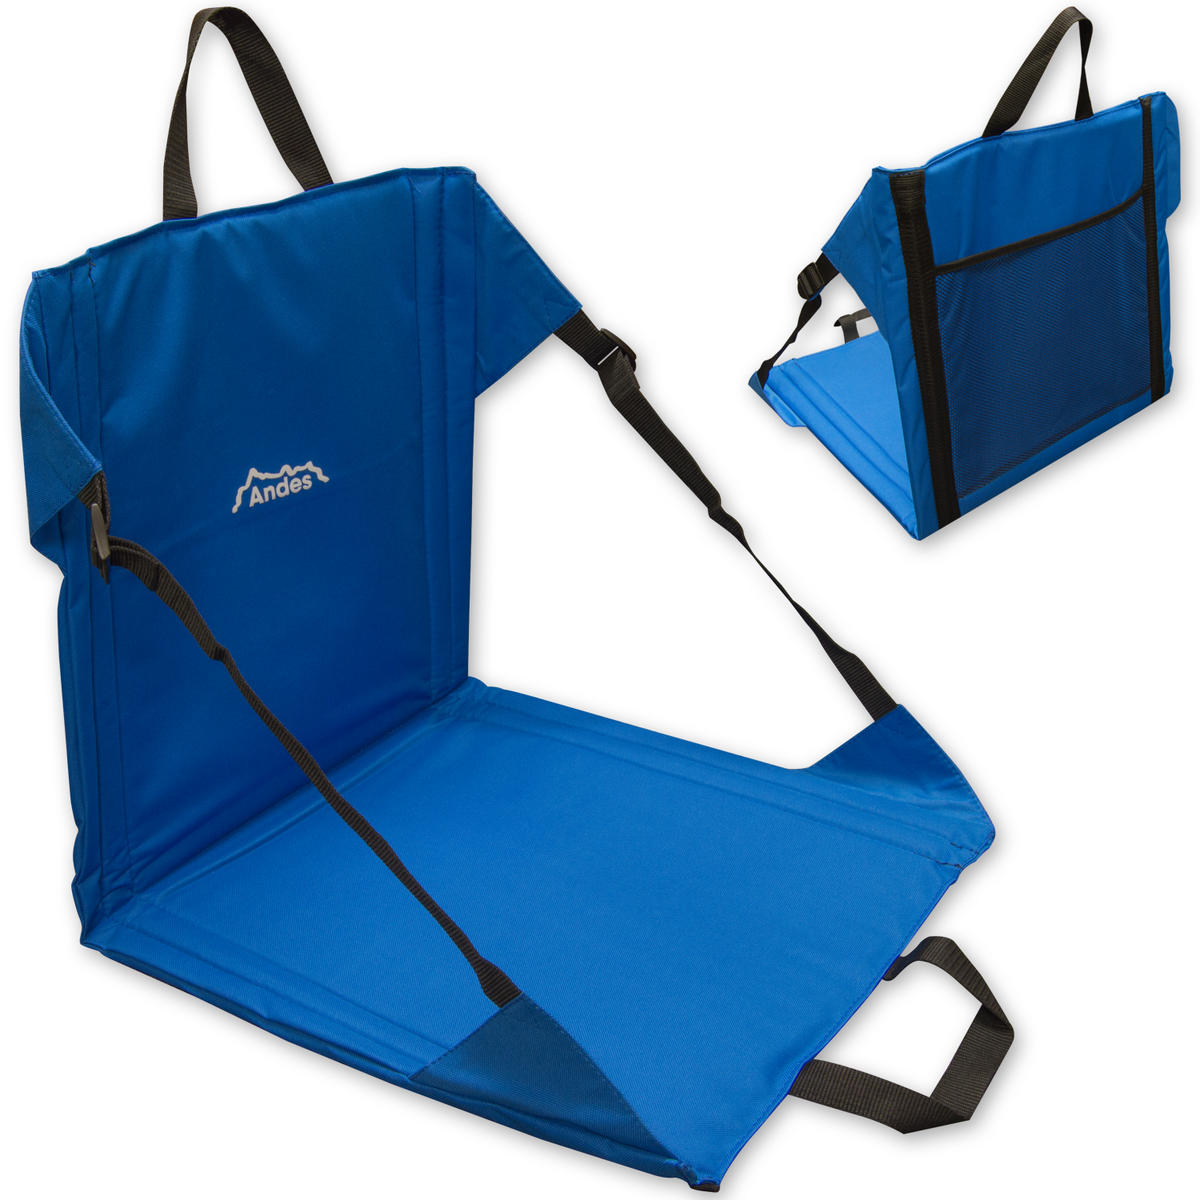 Andes Folding Beach Chair